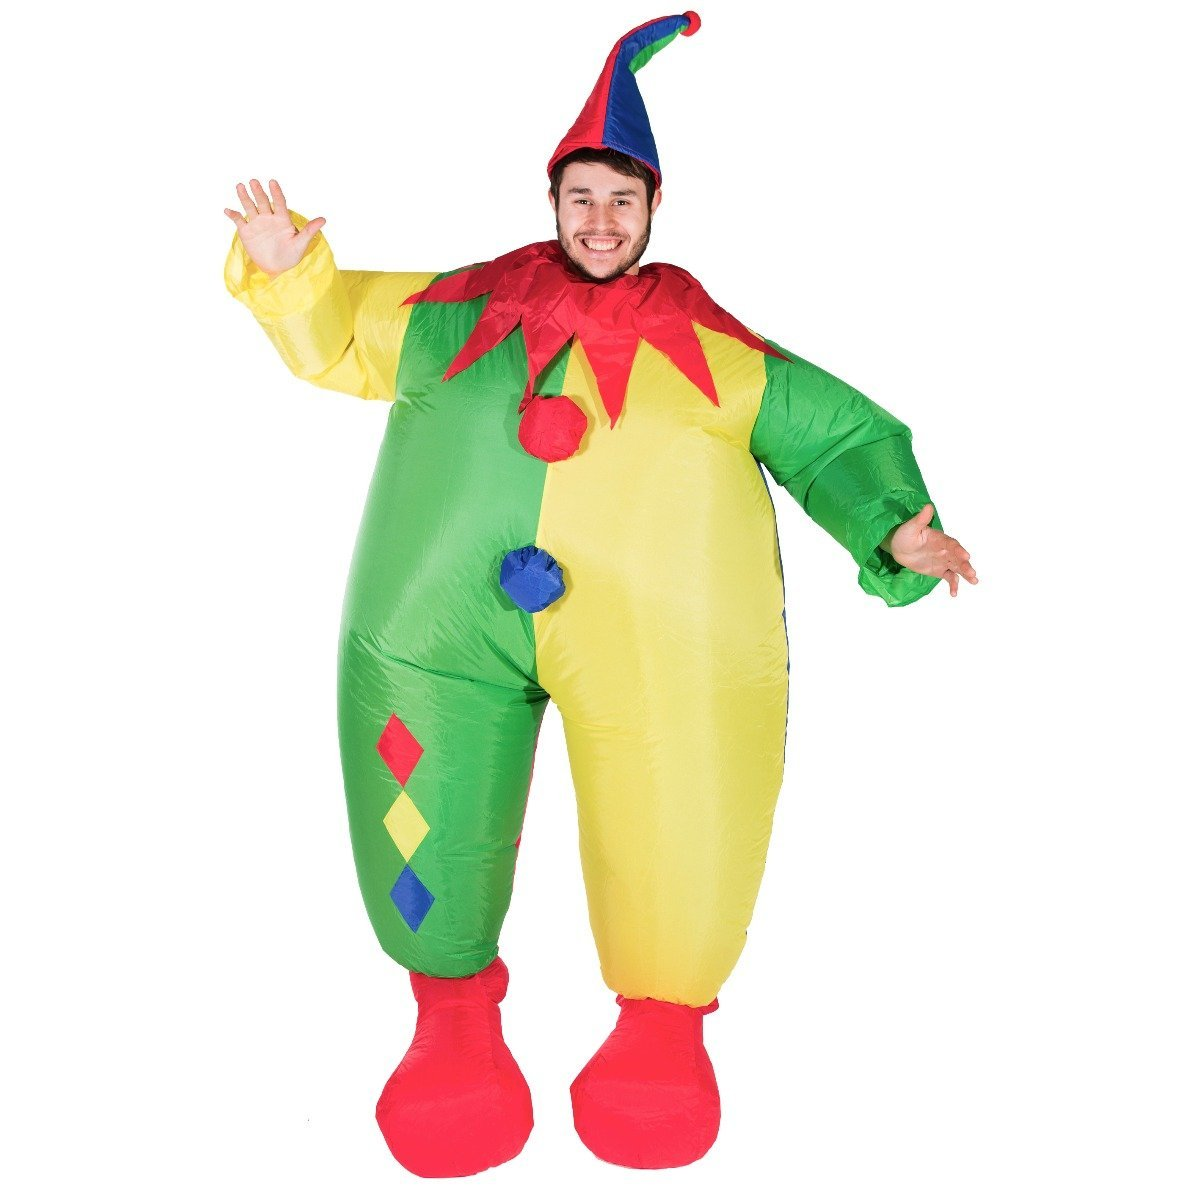 Bodysocks - Inflatable Clown Costume